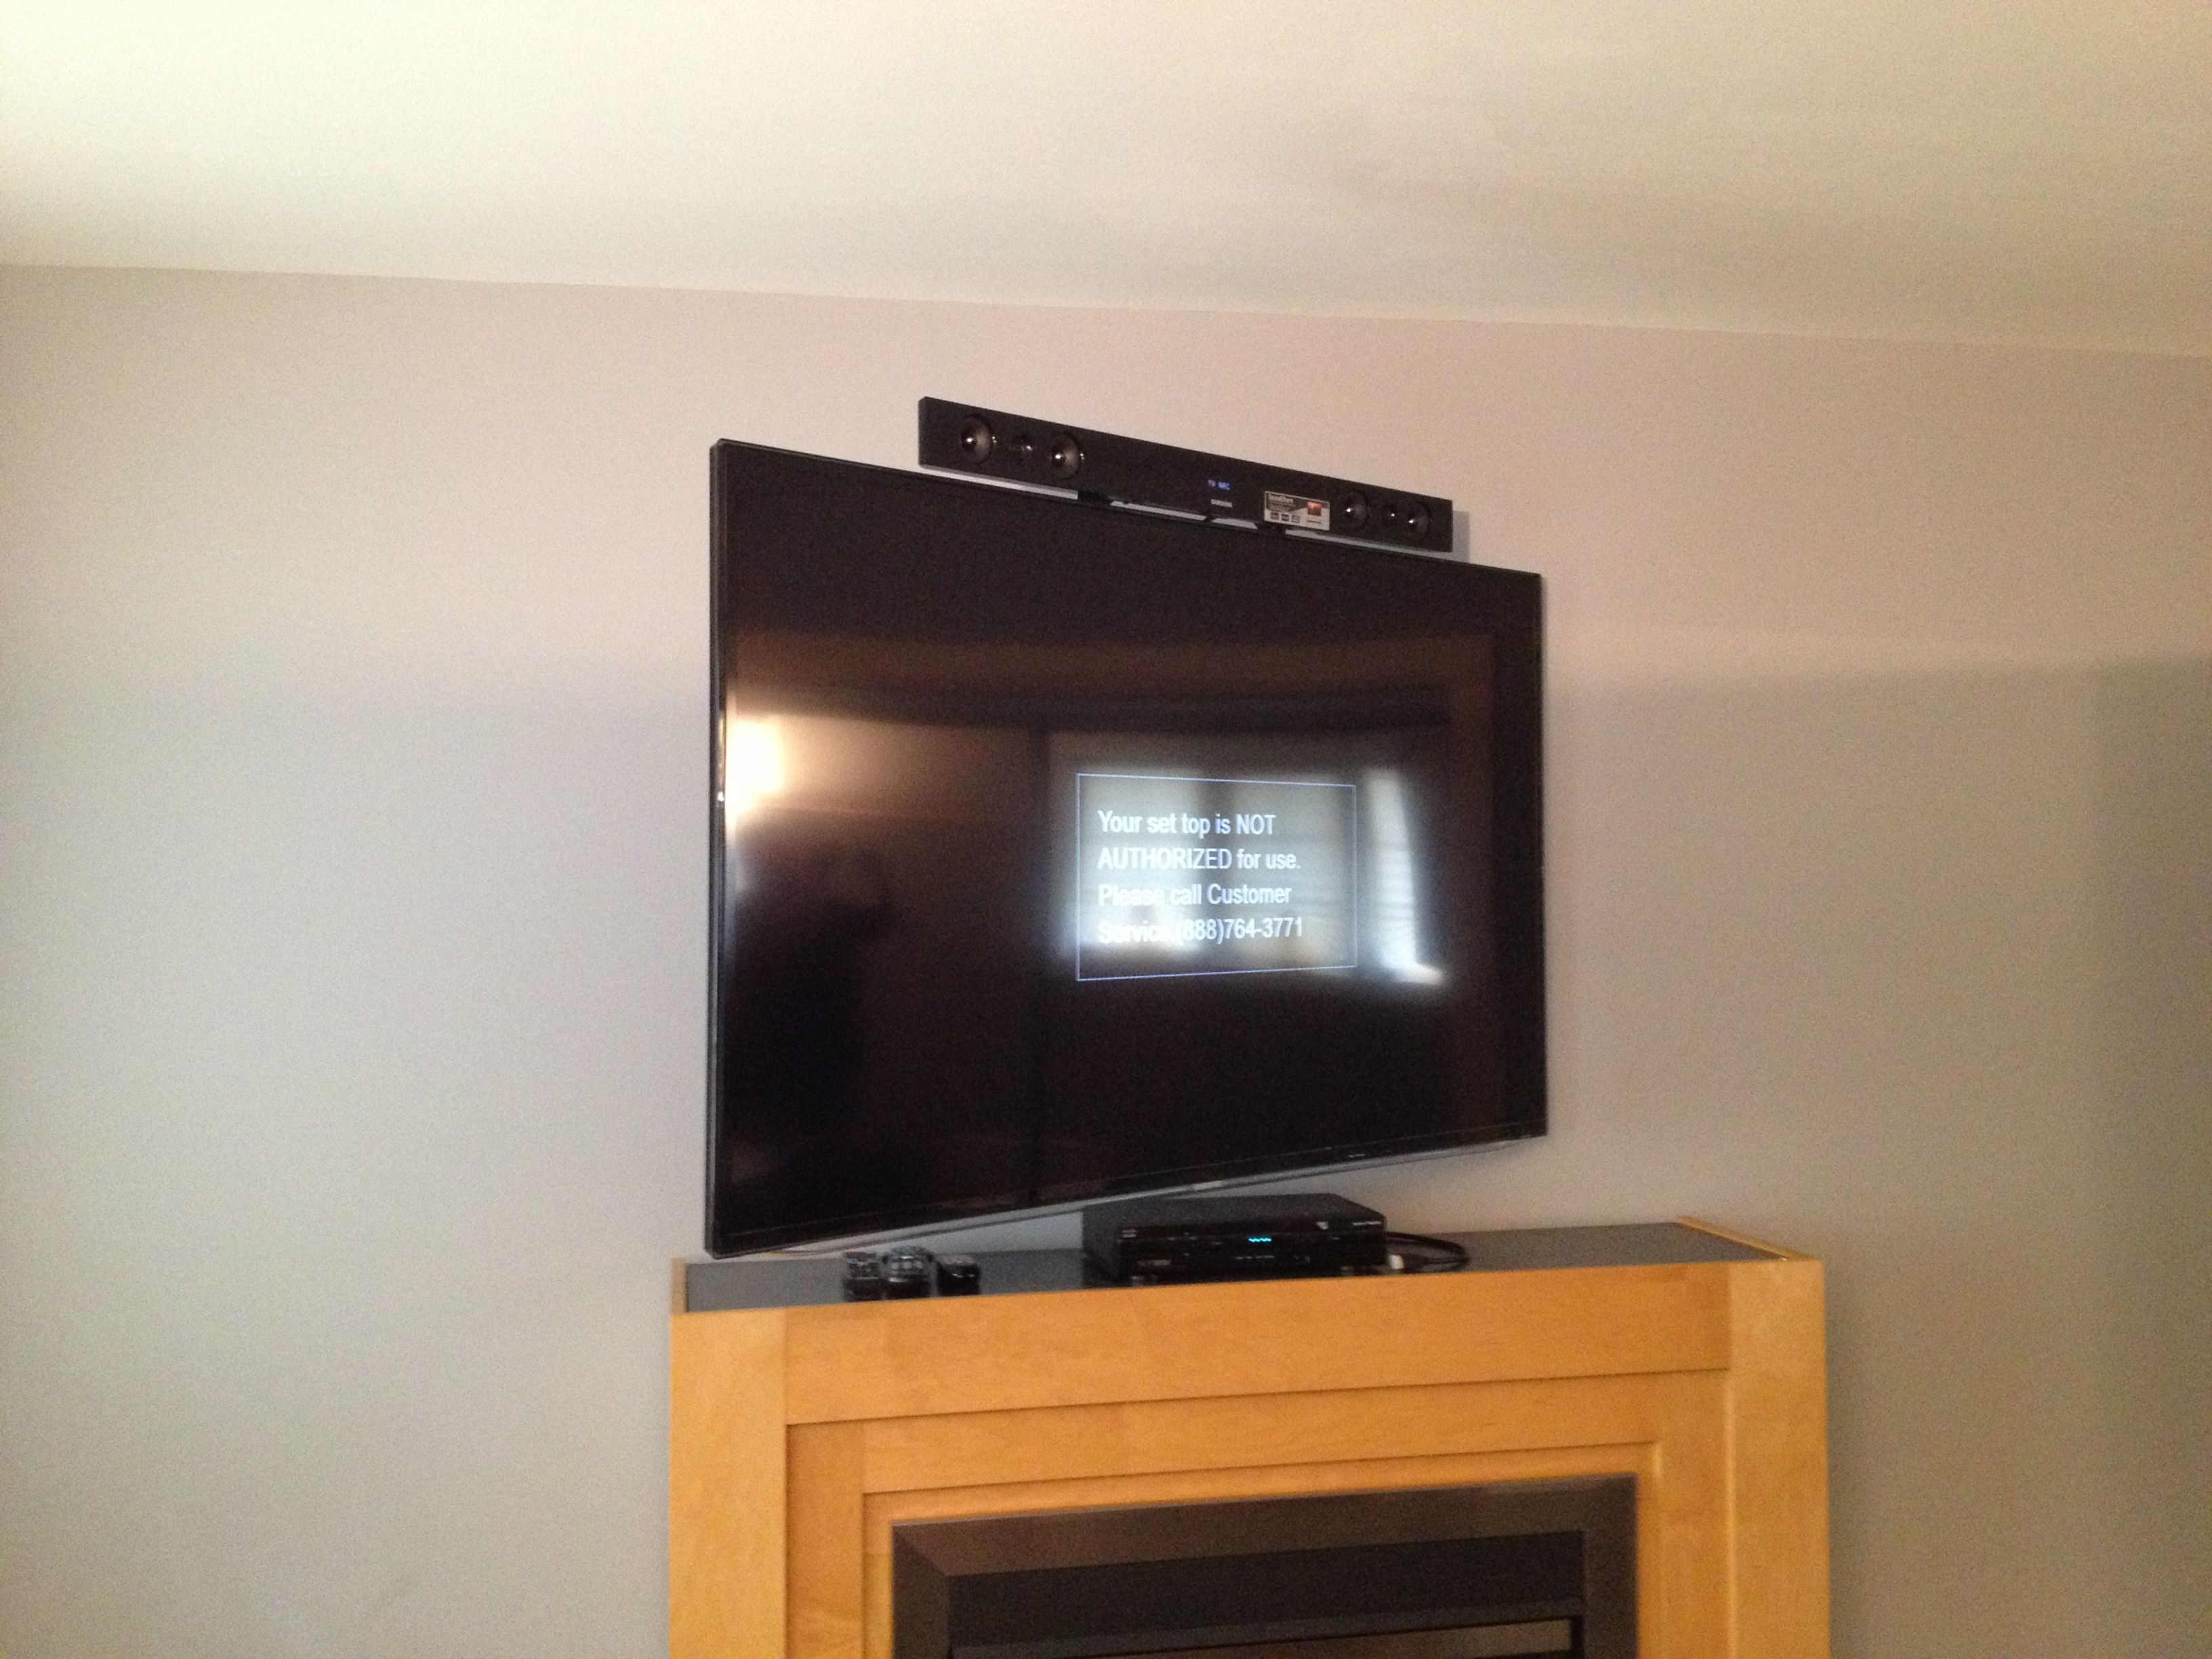 Samsung Sound Bar Installed With Sound Bar Bracket